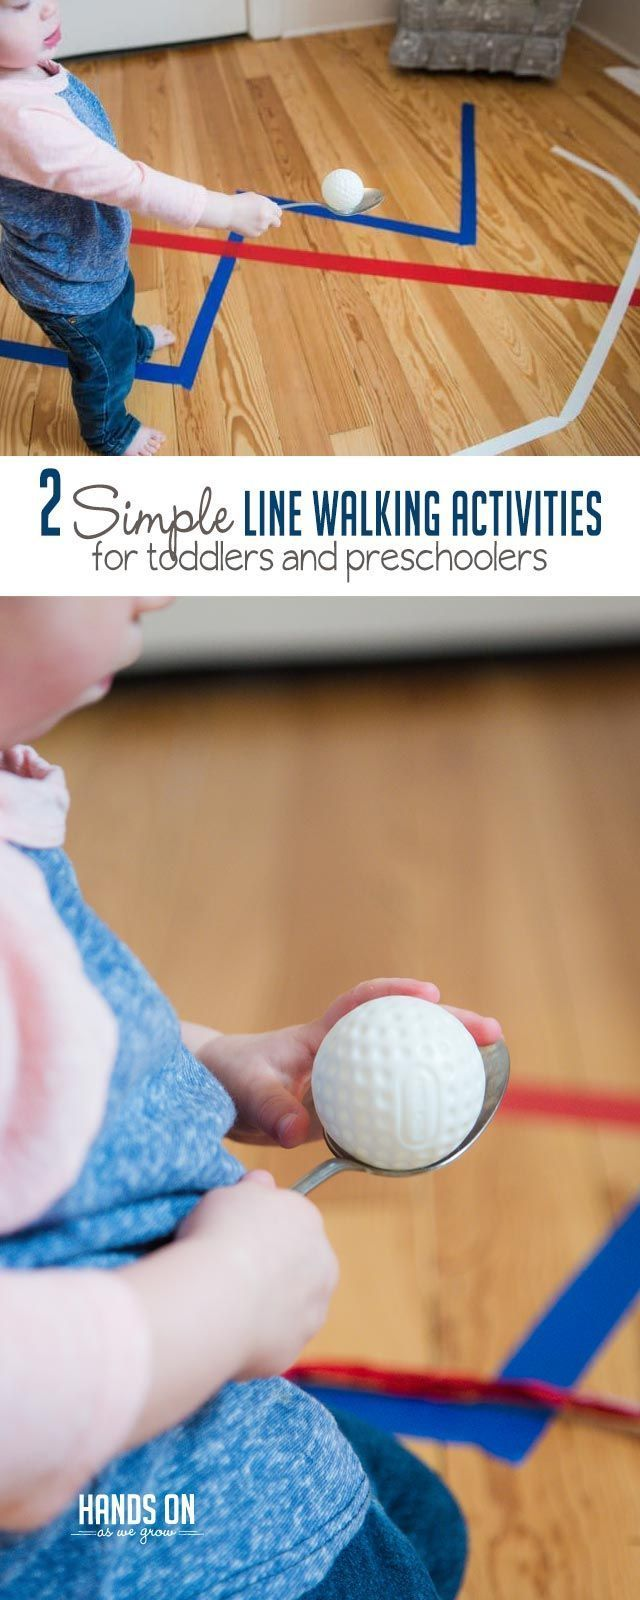 Two Simple Line Walking Activities for Toddlers & Preschoolers